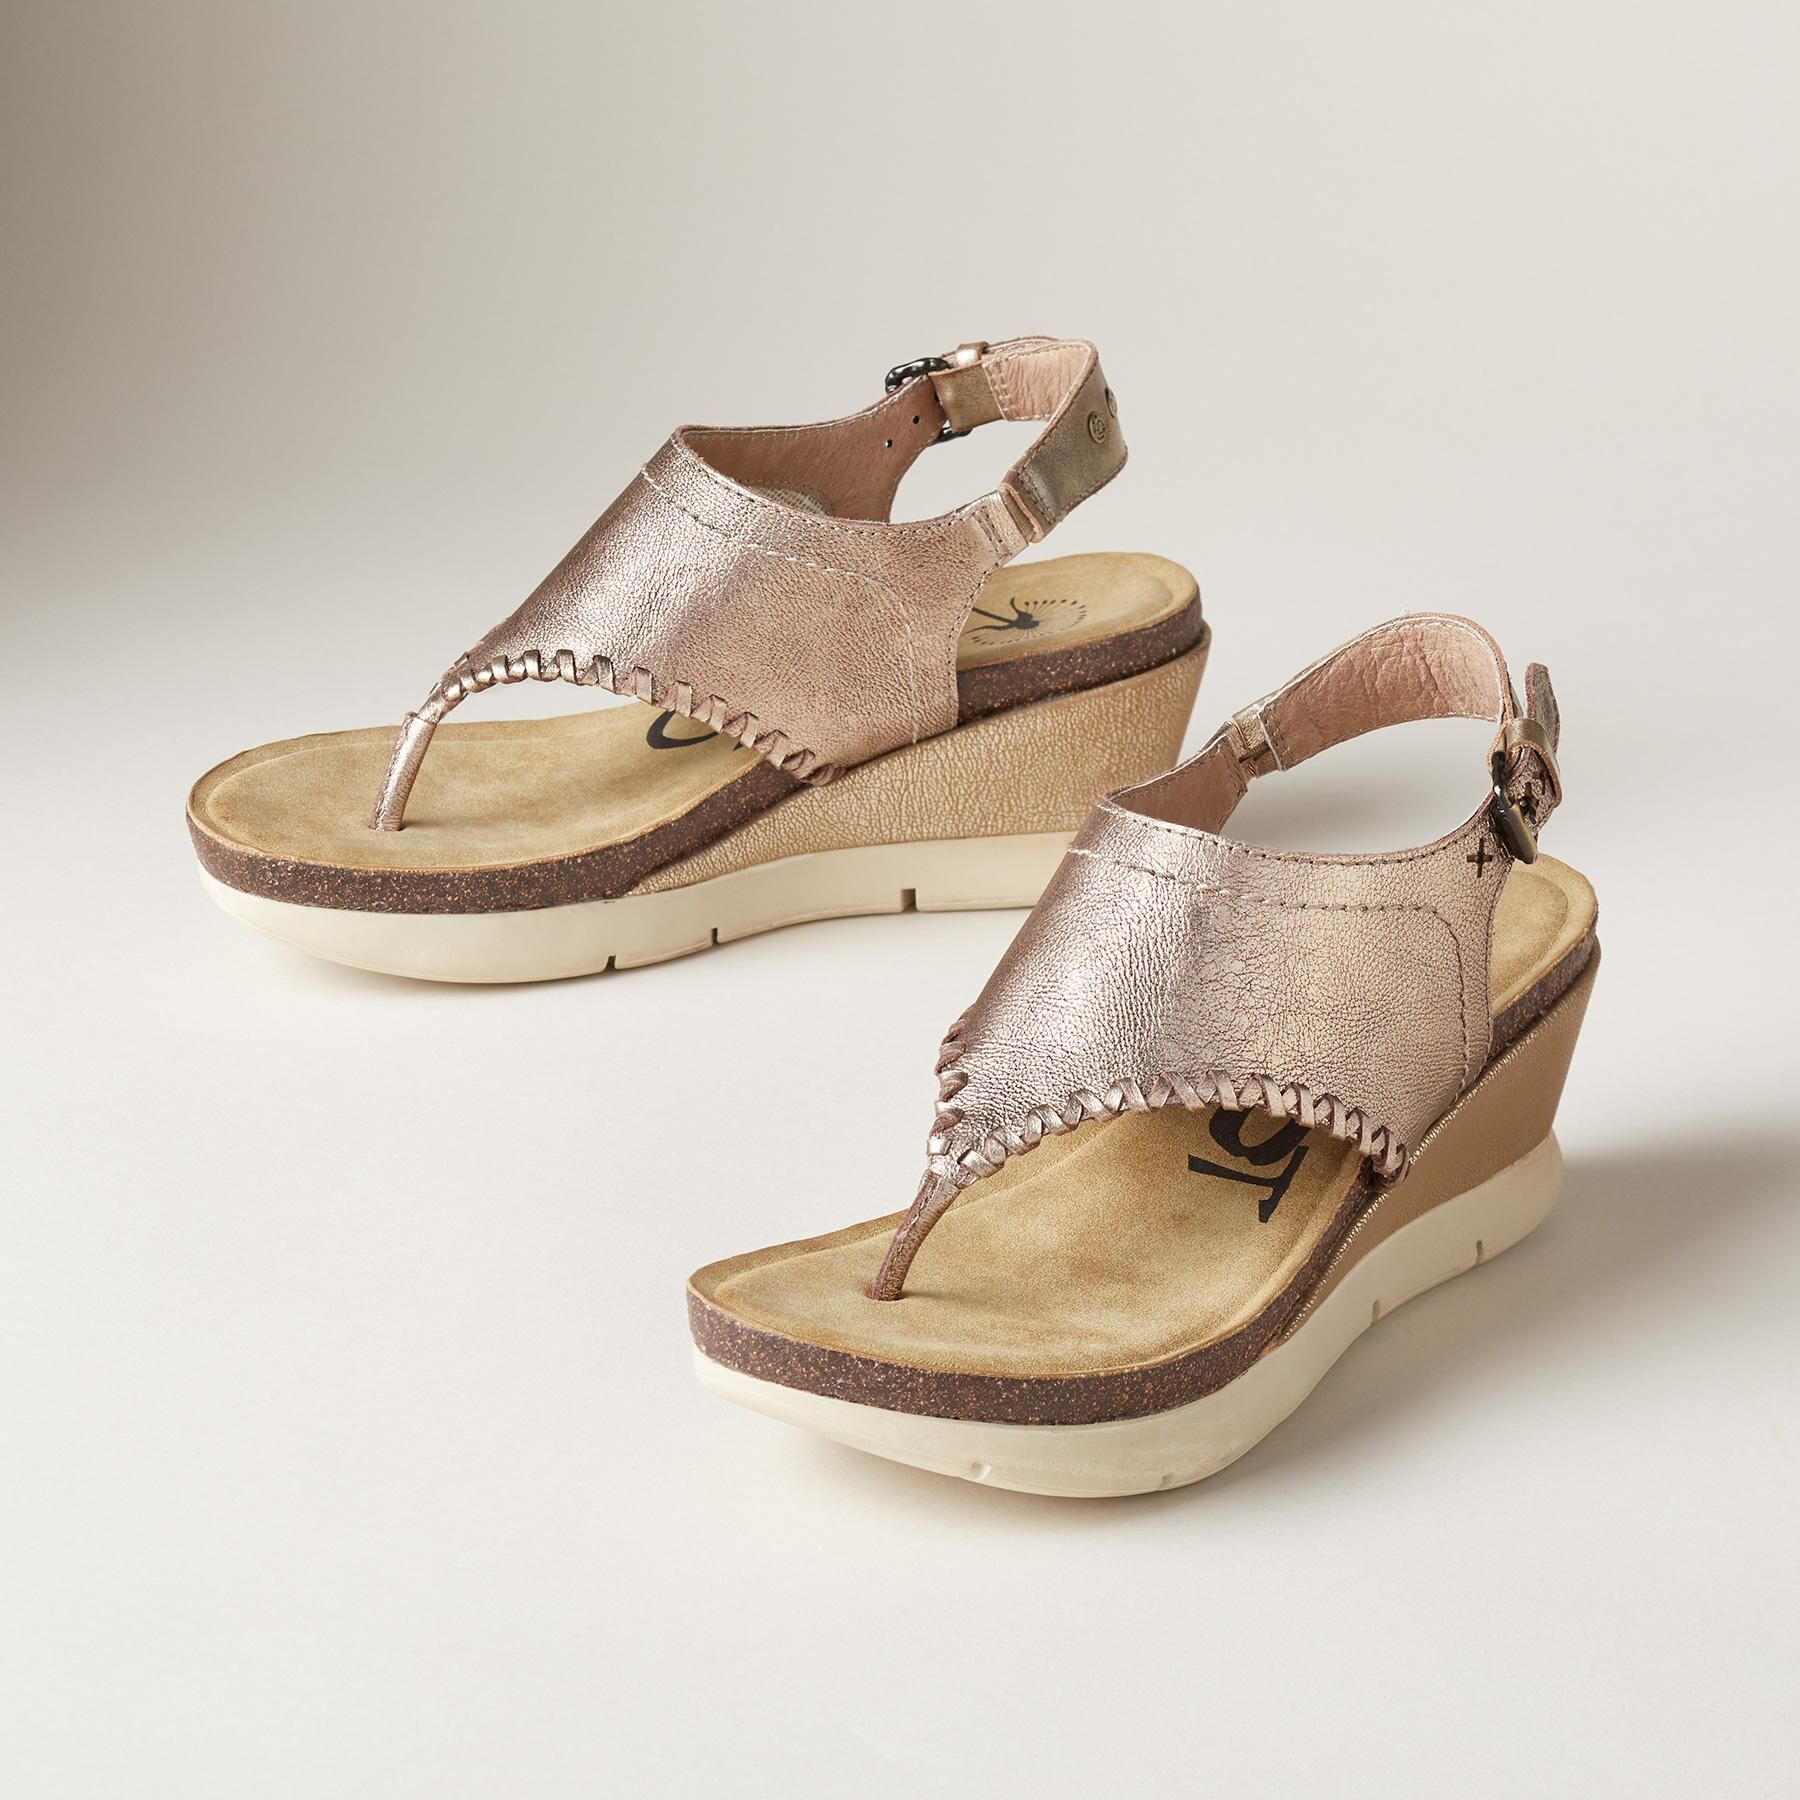 Celestia Sandals Picked From Sundance A Subtle Metallic Shimmer Elevates These Comfortable Lightwei In 2020 Leather Wedge Sandals Lightweight Sandals Womens Sandals